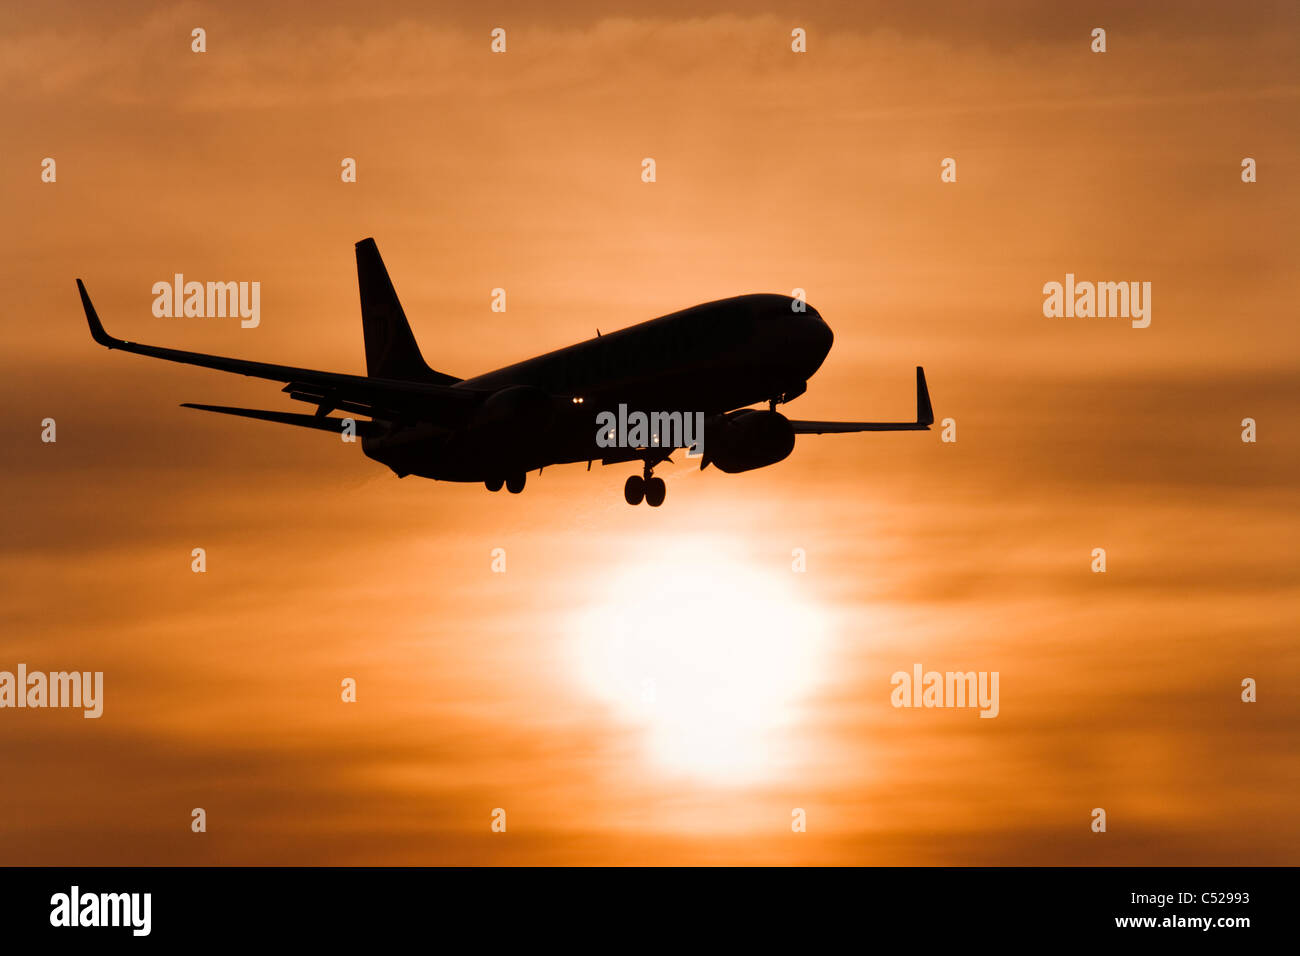 Aircraft against setting sun - Stock Image